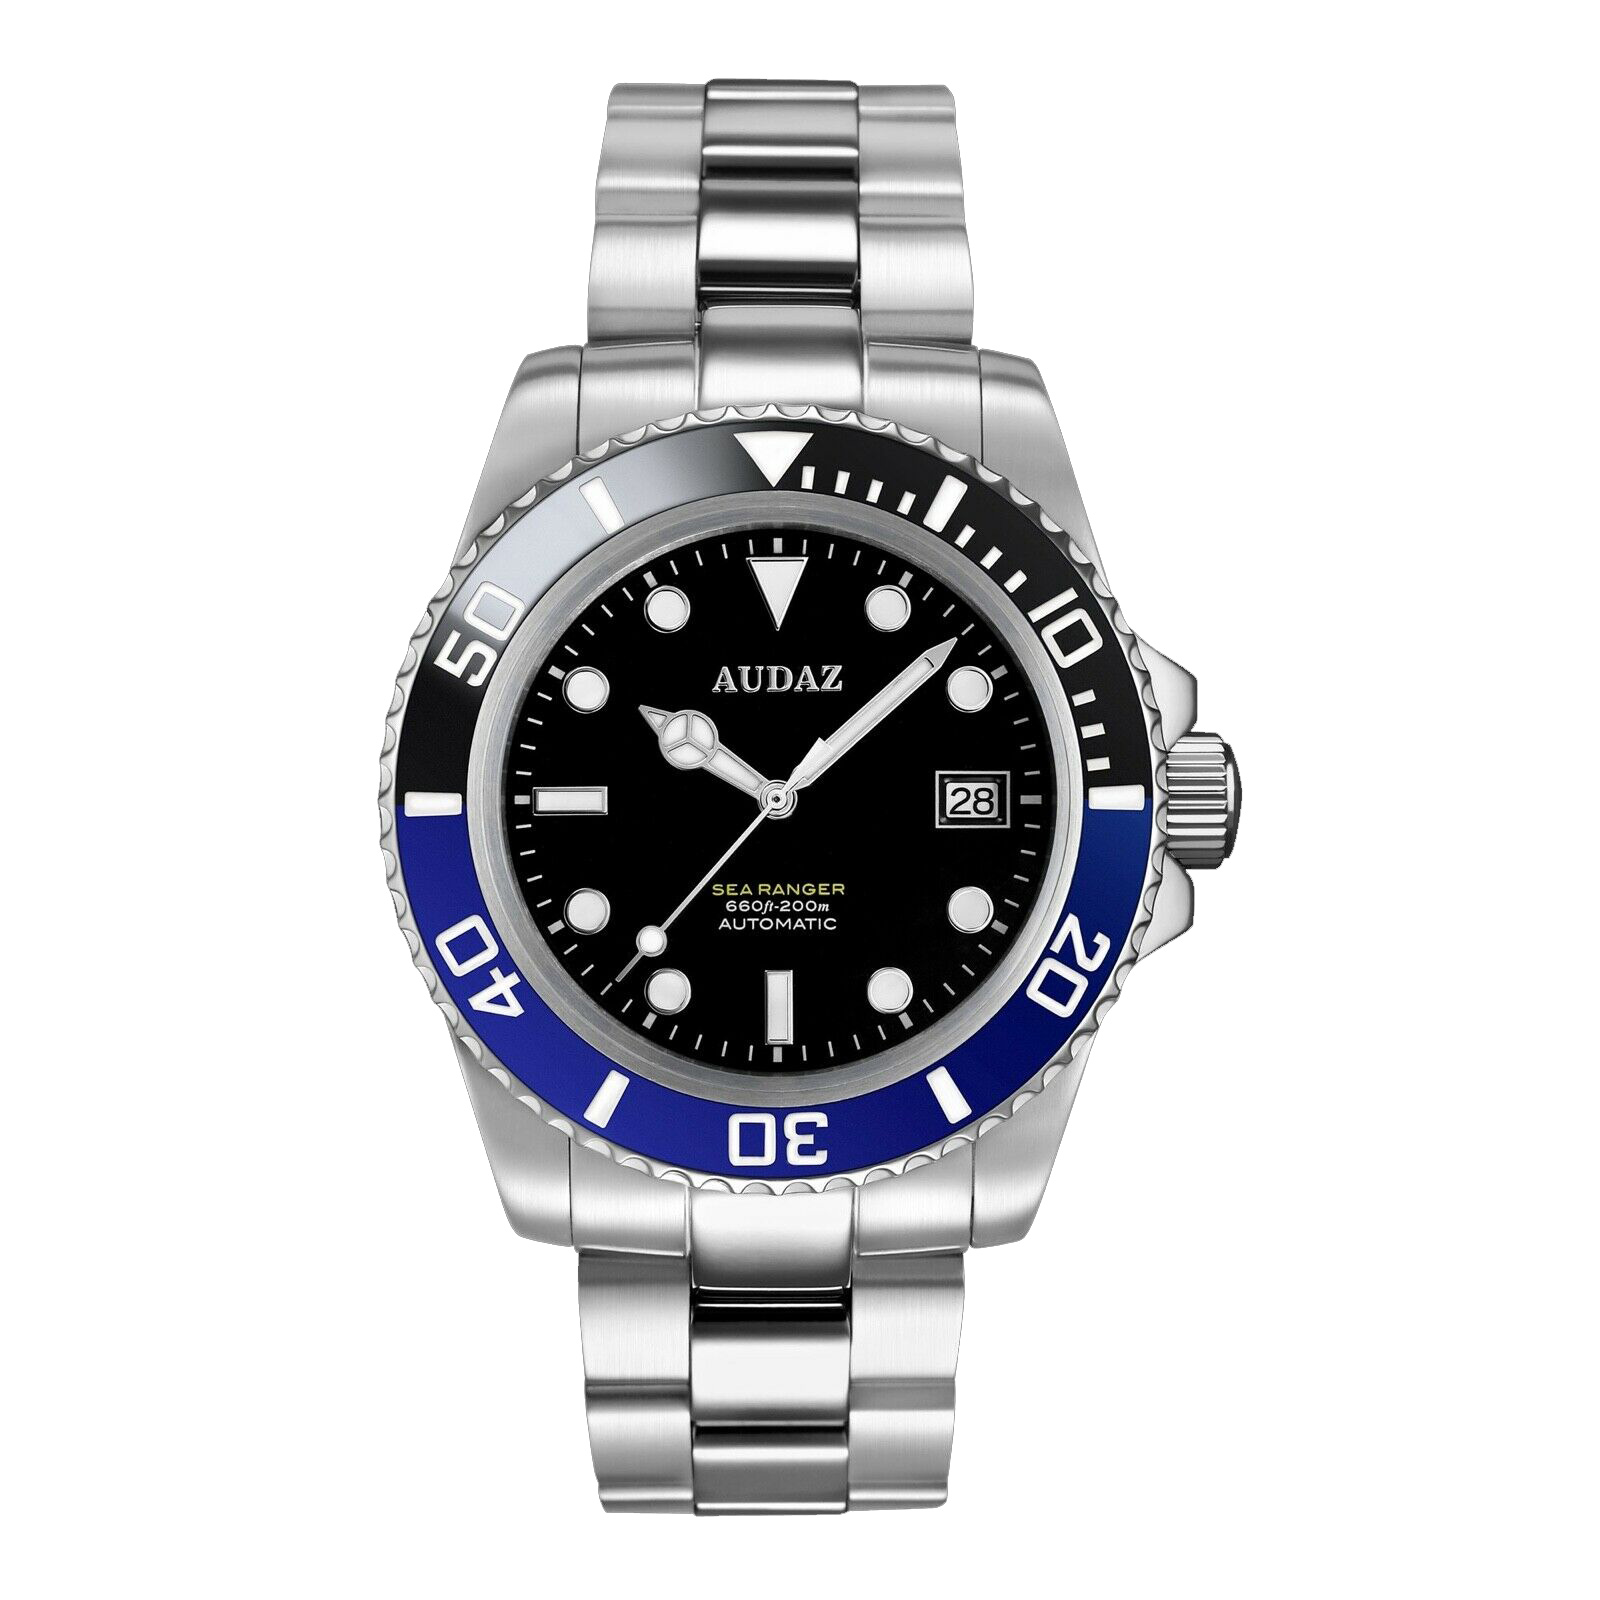 Audaz Sea Ranger Black Dial Automatic Men's Diver Watch 42mm ADZ-2050-03